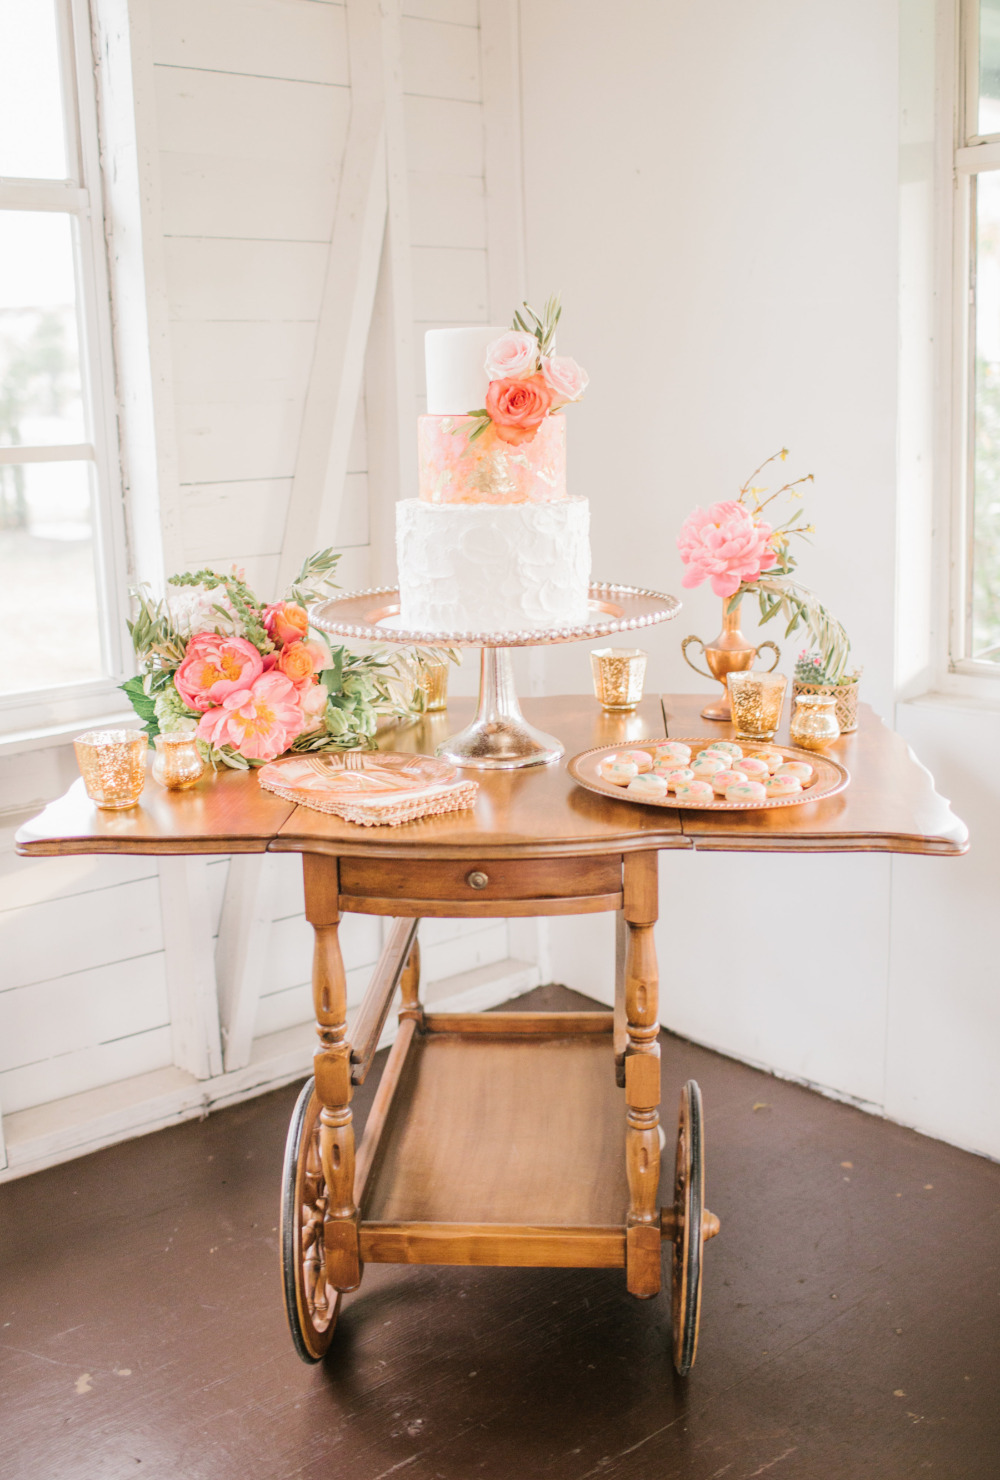 vintage cart dessert table idea